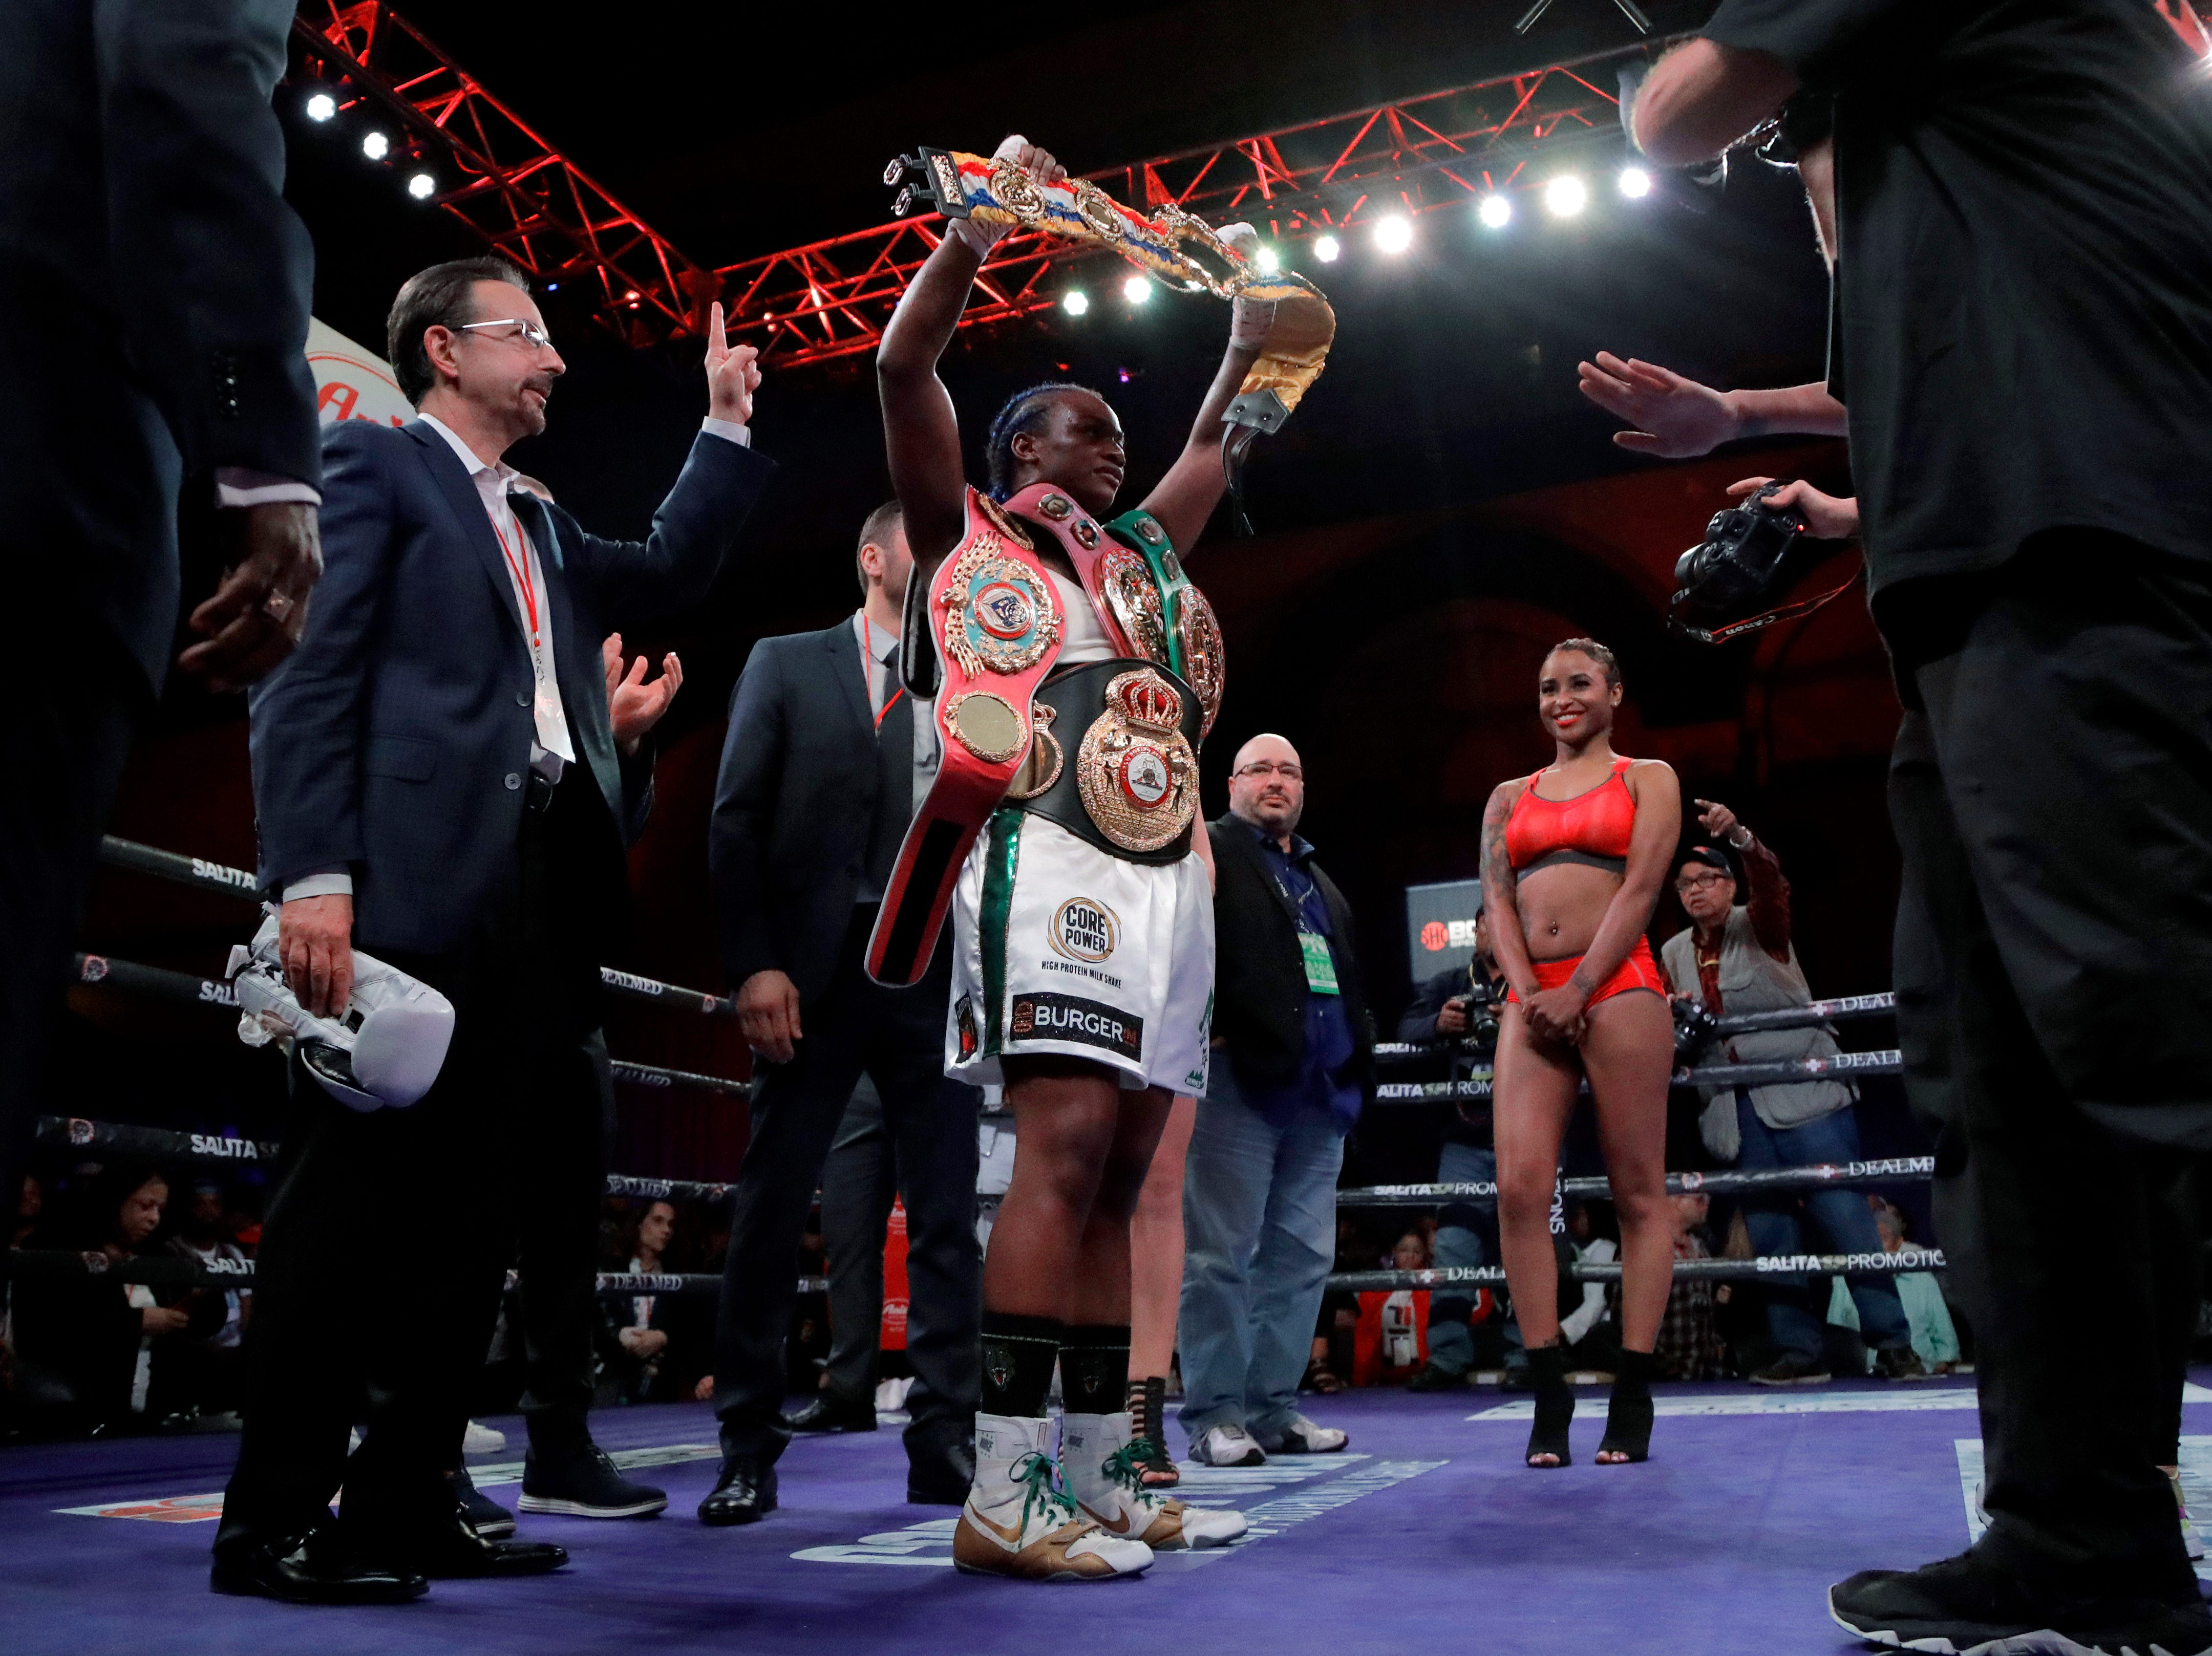 Claressa Shields holds her belts after defeating Christina Hammer during the women's middleweight championship boxing bout Saturday, April 13, 2019, in Atlantic City, N.J. Shields won by unanimous decision.